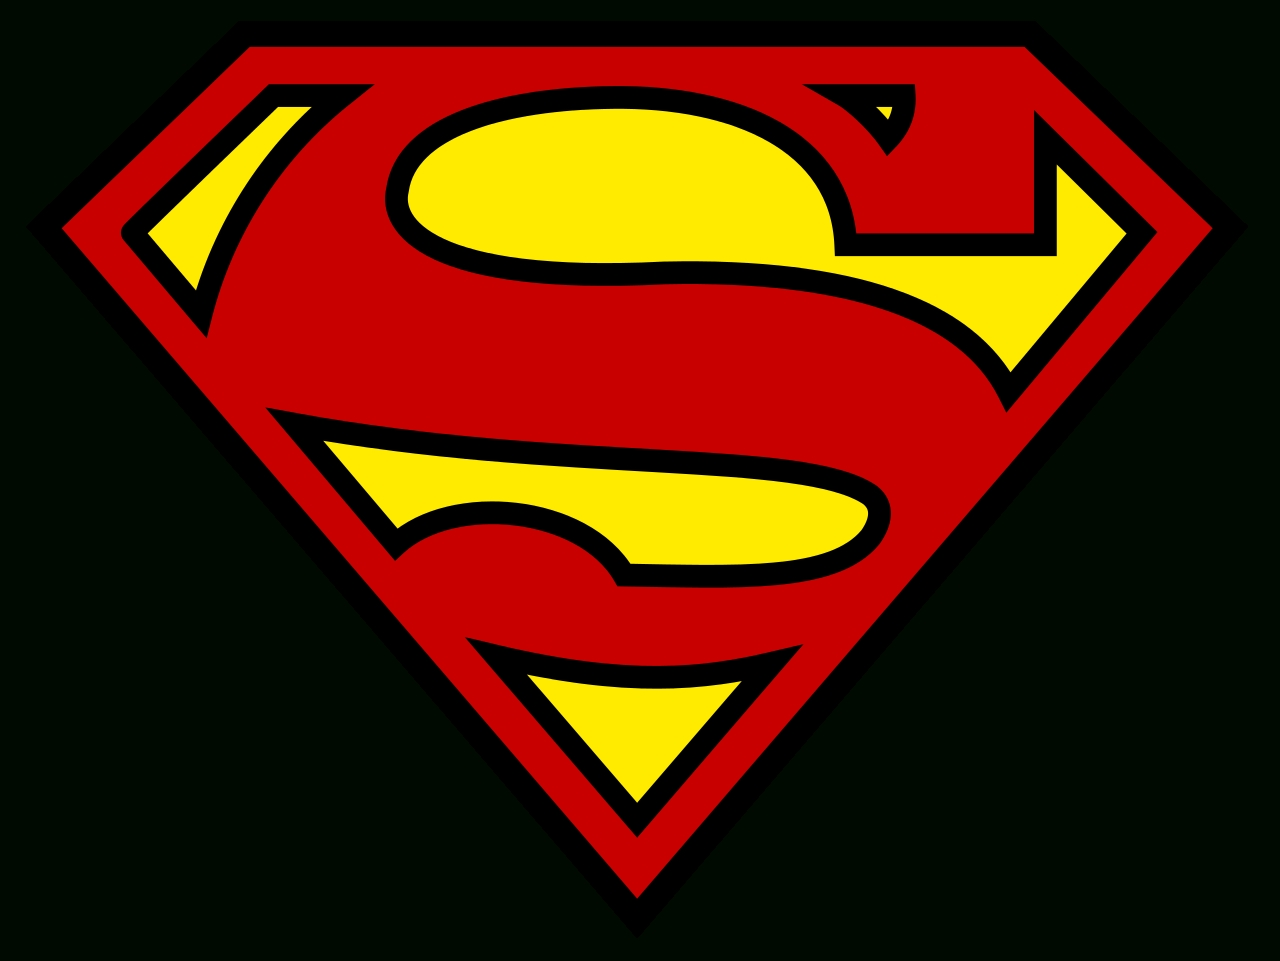 10 Top Images Of Superman Symbol FULL HD 1080p For PC Background